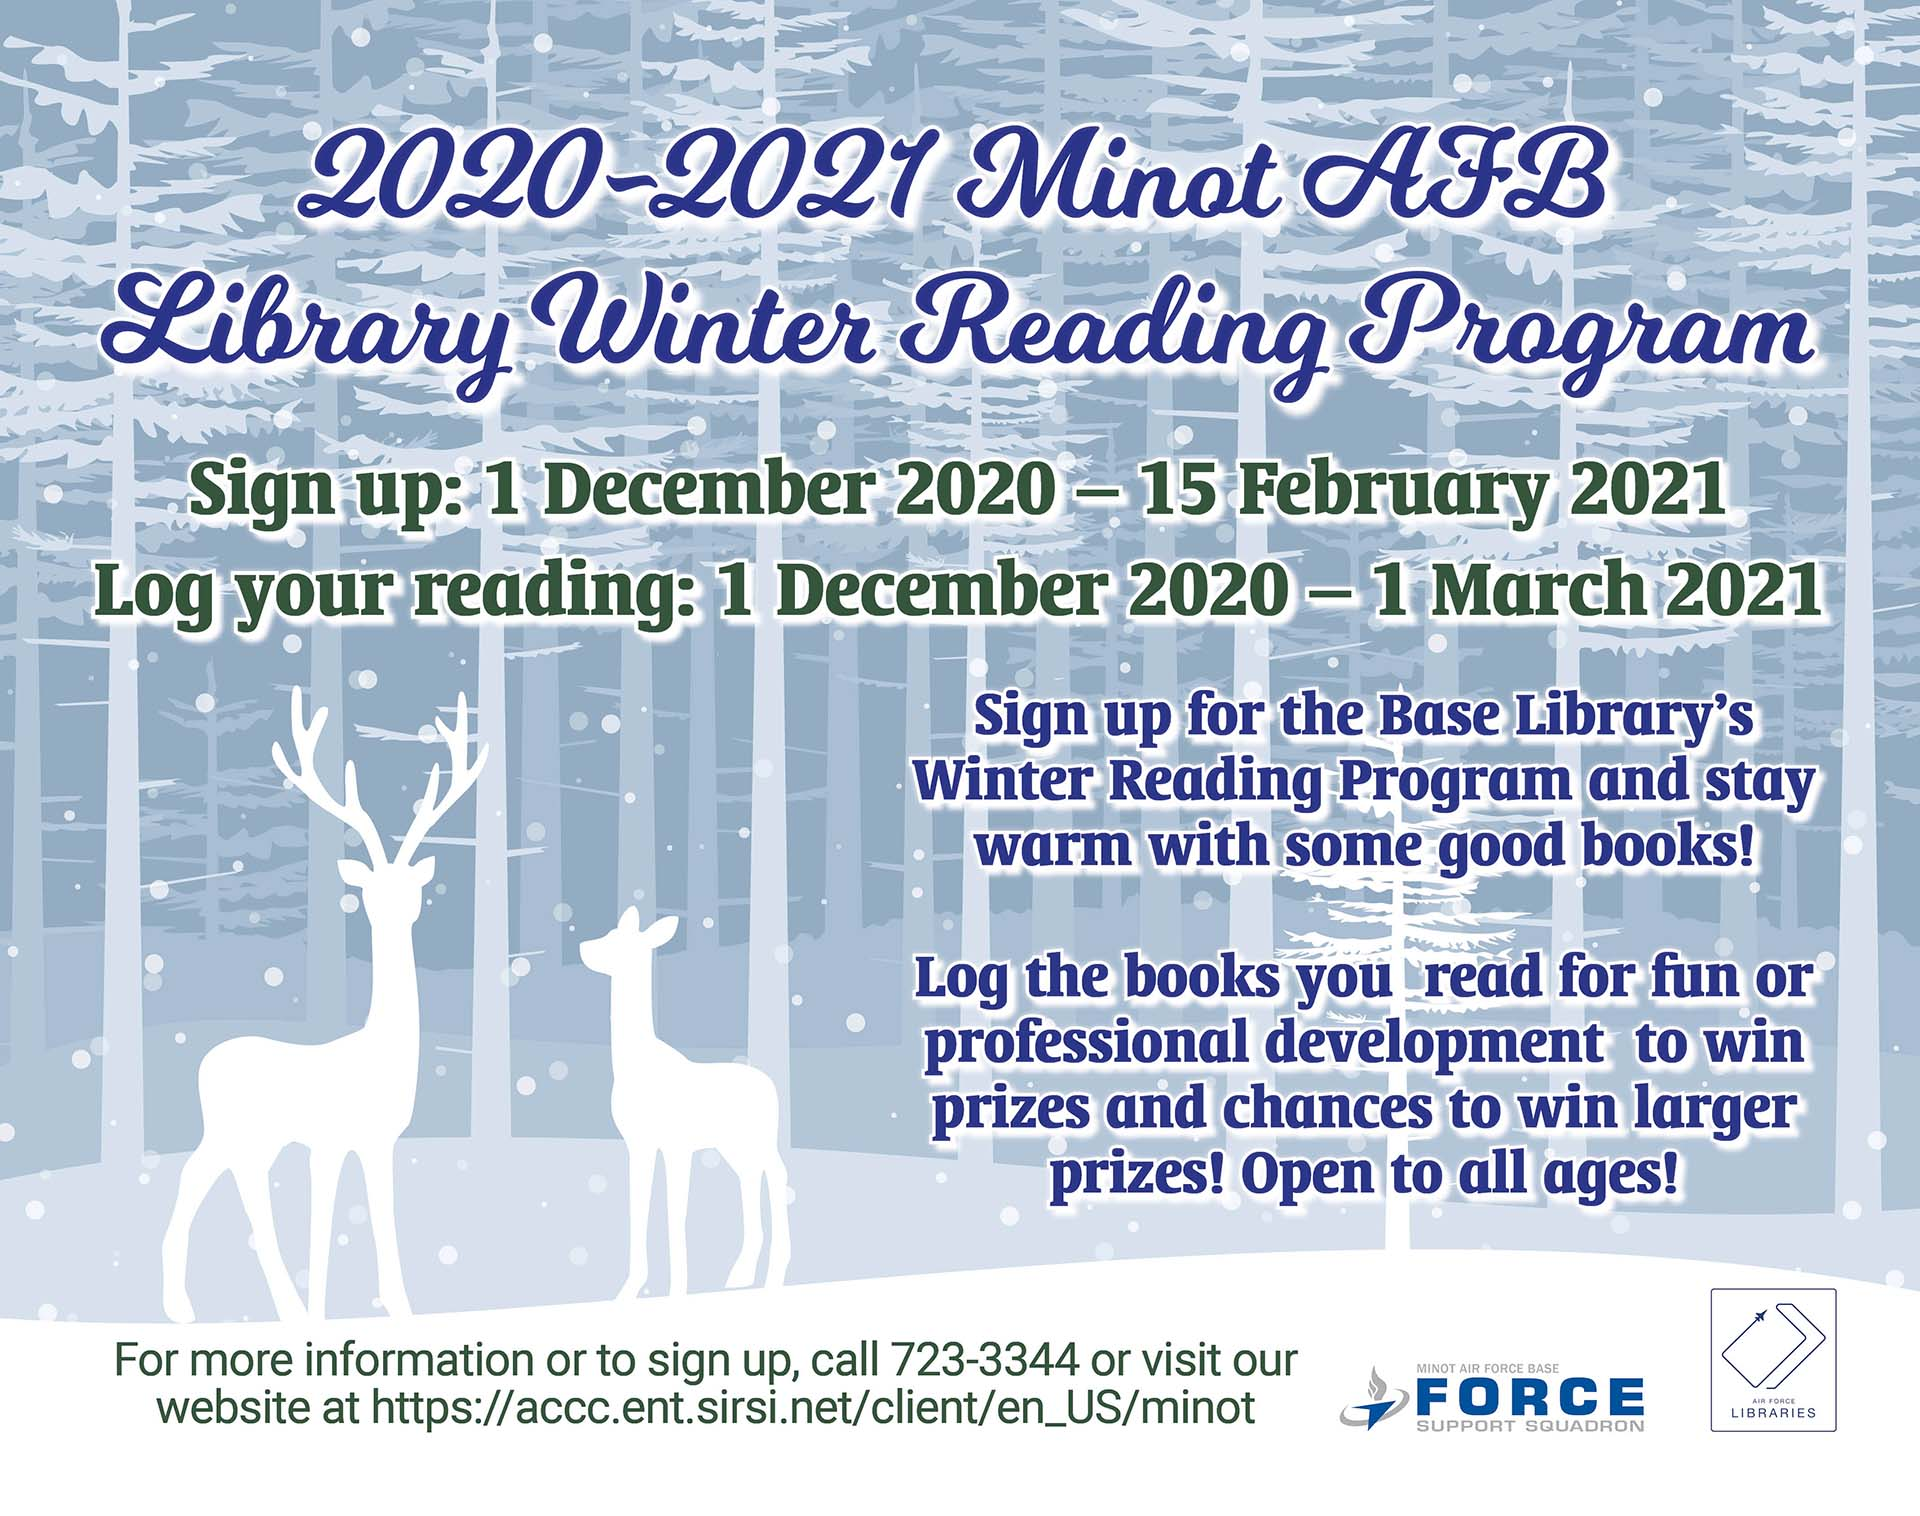 Minot AFB Library - Winter Reading Program - Last Day to Sign Up